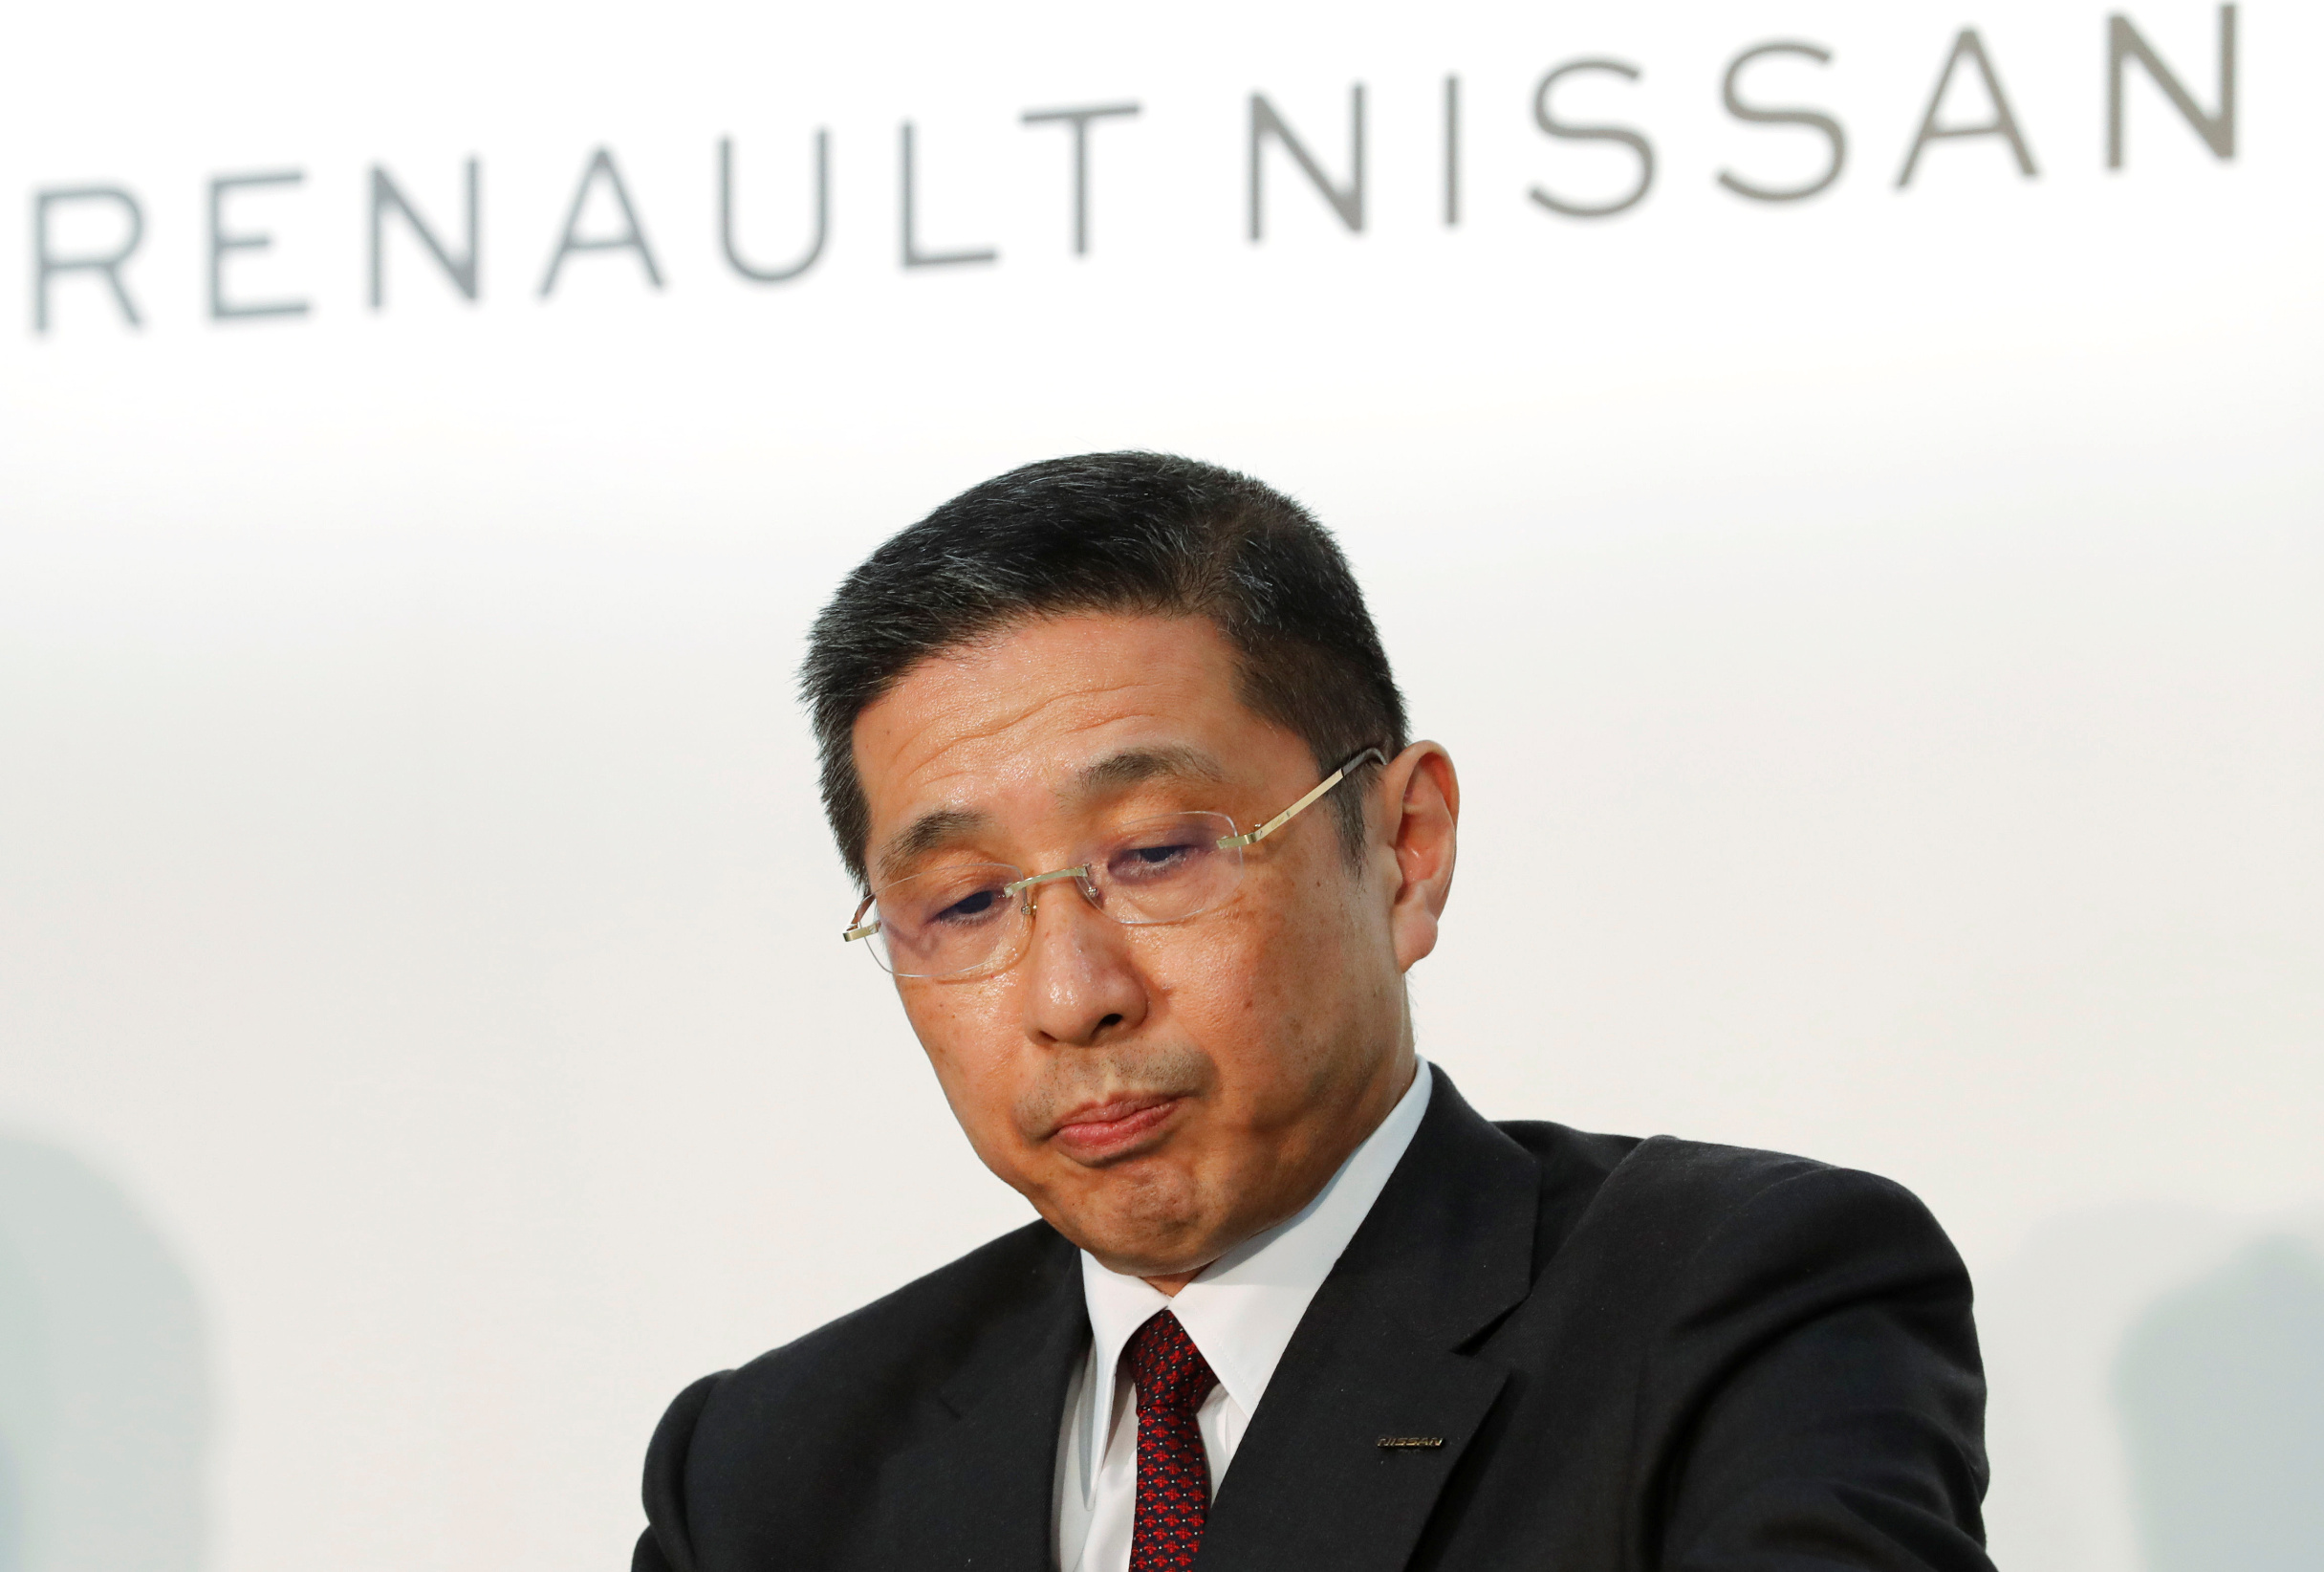 Nissan CEO Hiroto Saikawa attends a joint news conference in Yokohama, Japan, March 12, 2019. REUTERS/Kim Kyung-Hoon - RC1E38D9E7A0